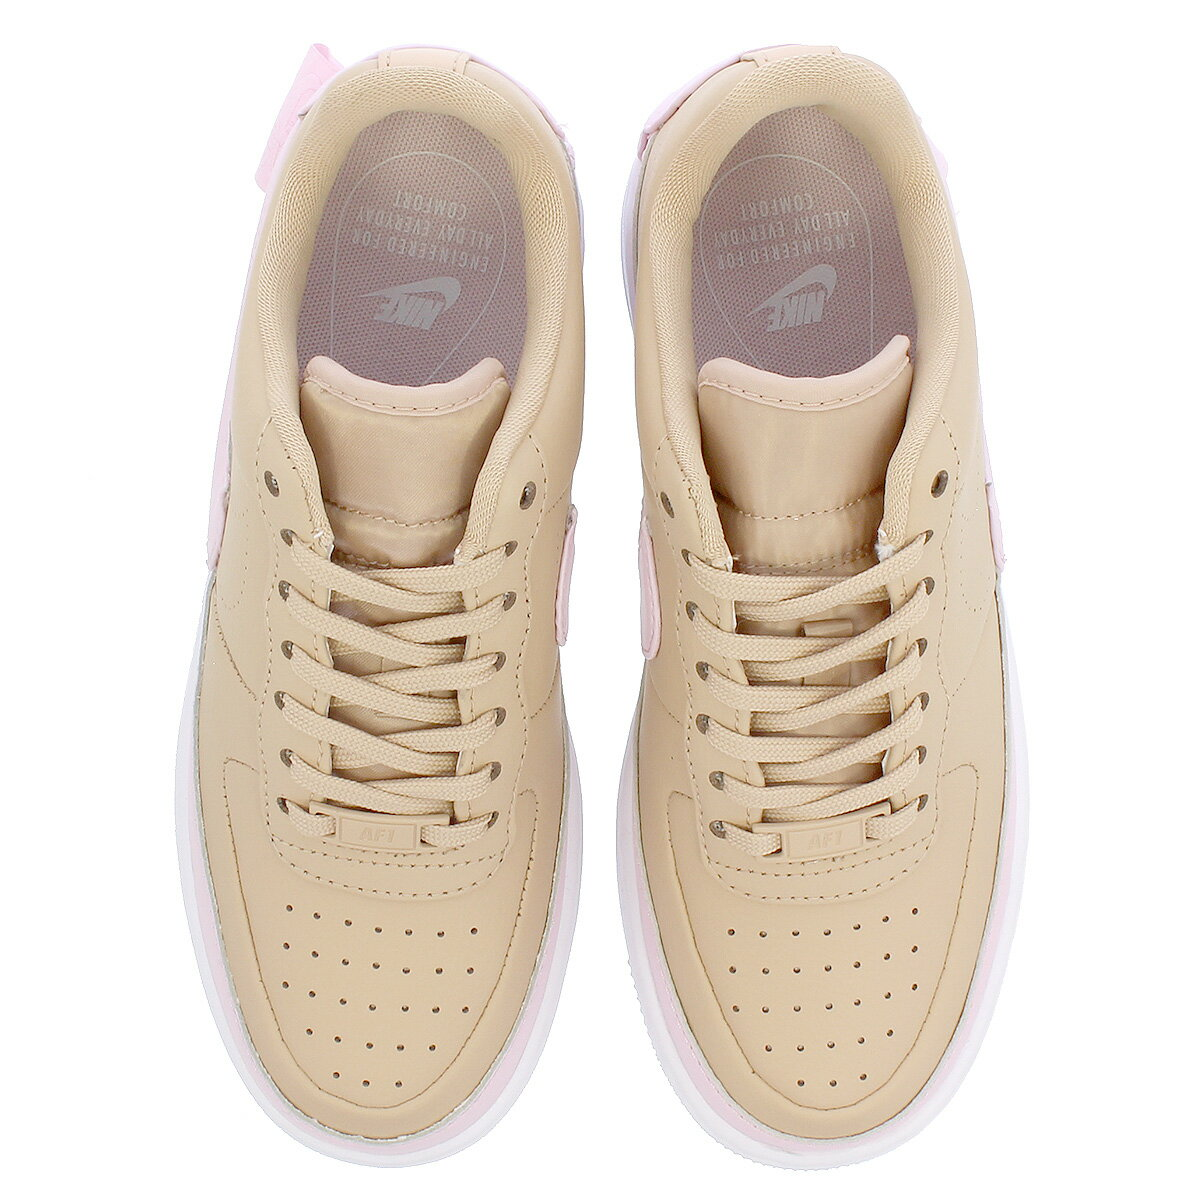 NIKE WMNS AIR FORCE 1 JESTER XX Nike women air force 1 Jester XX BIO BEIGEPINK FORCEWHITE ao1220 202